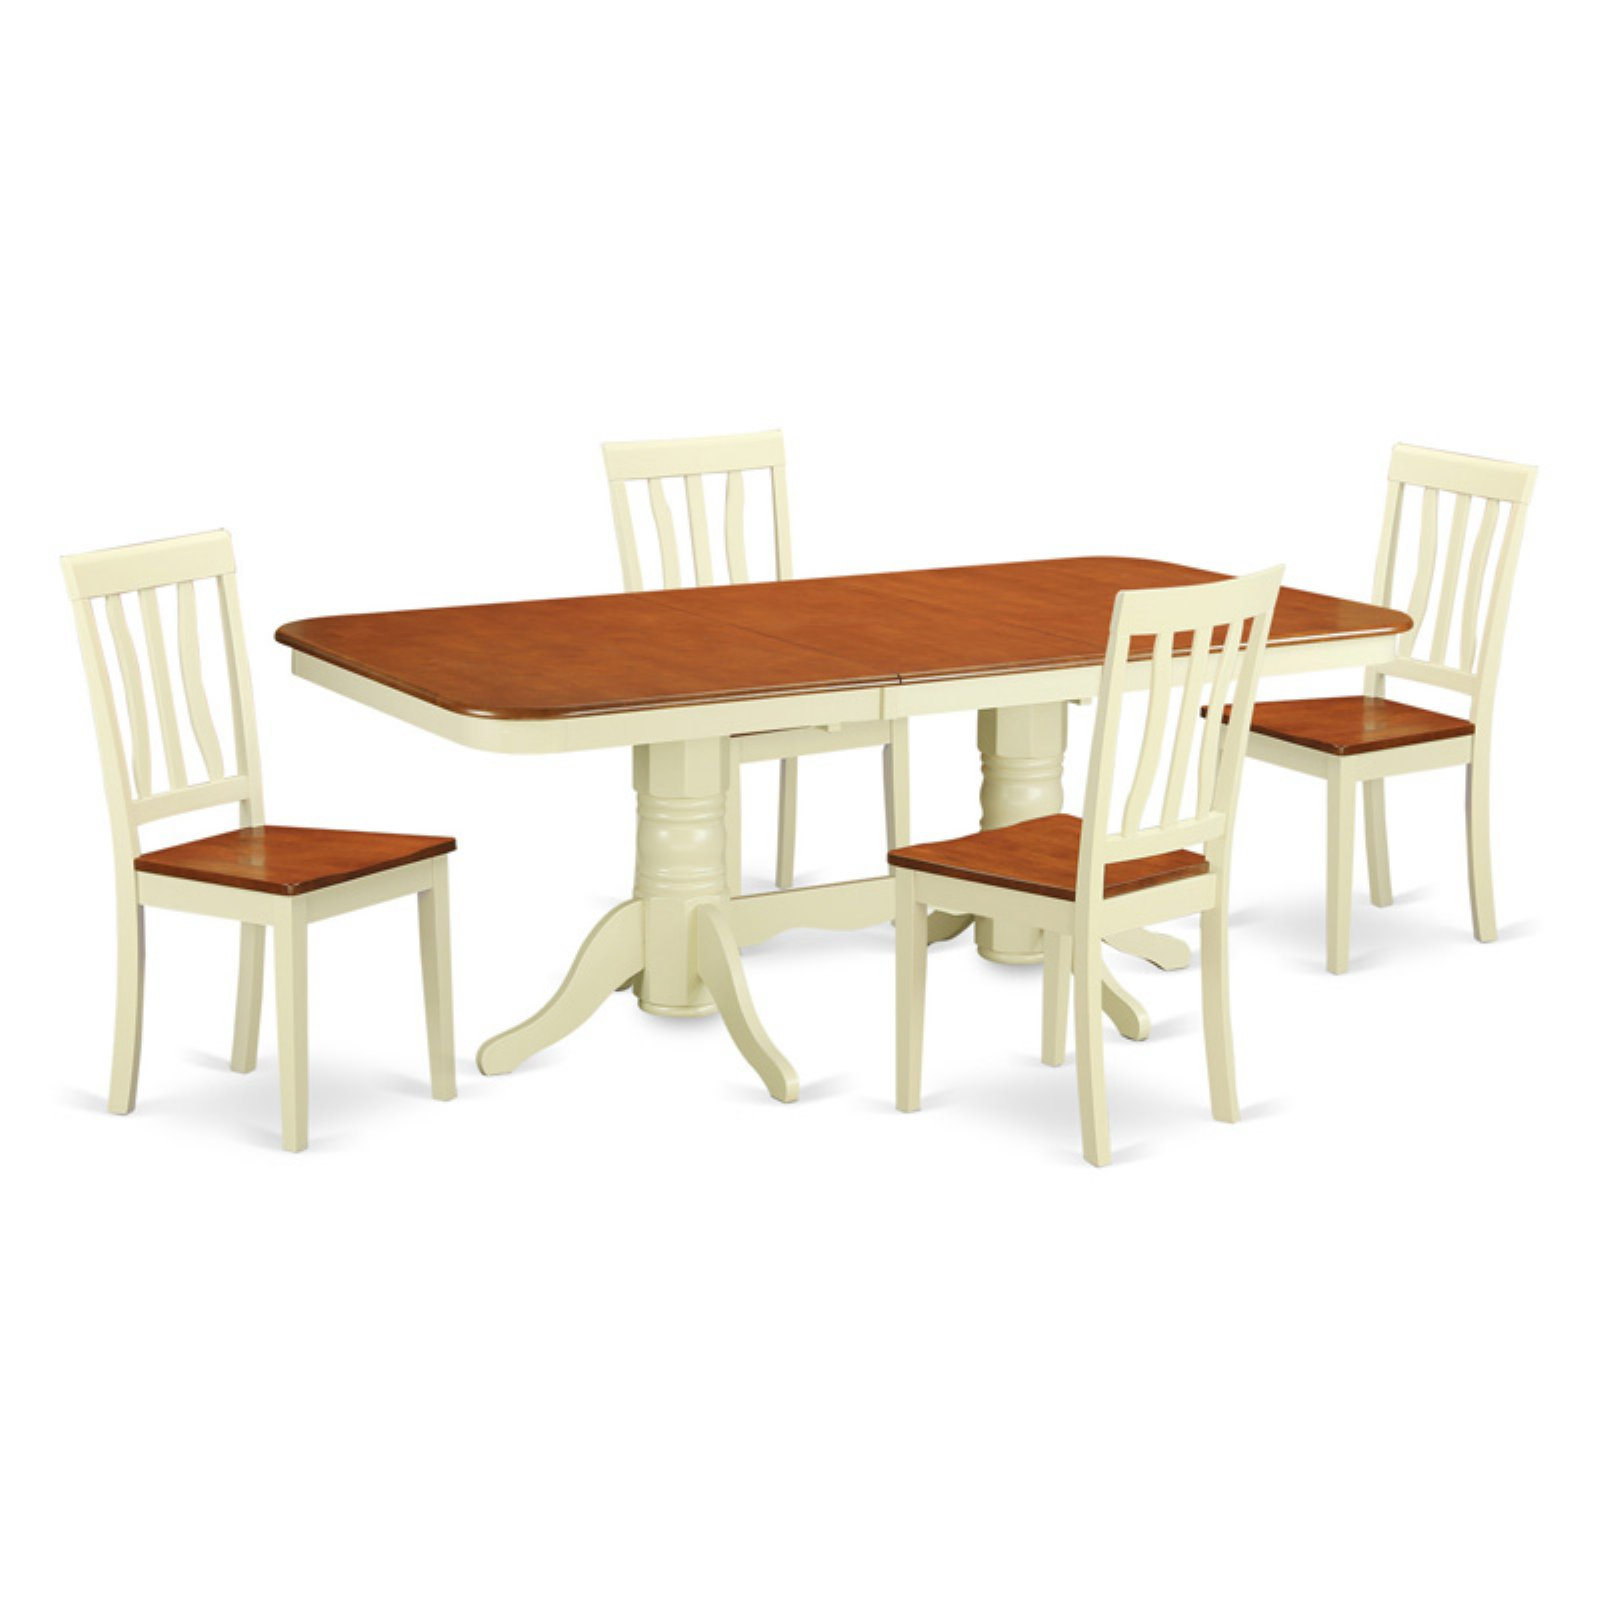 East West Furniture Napoleon 5 Piece Trestle Dining Table Set with Antique Wooden Chairs